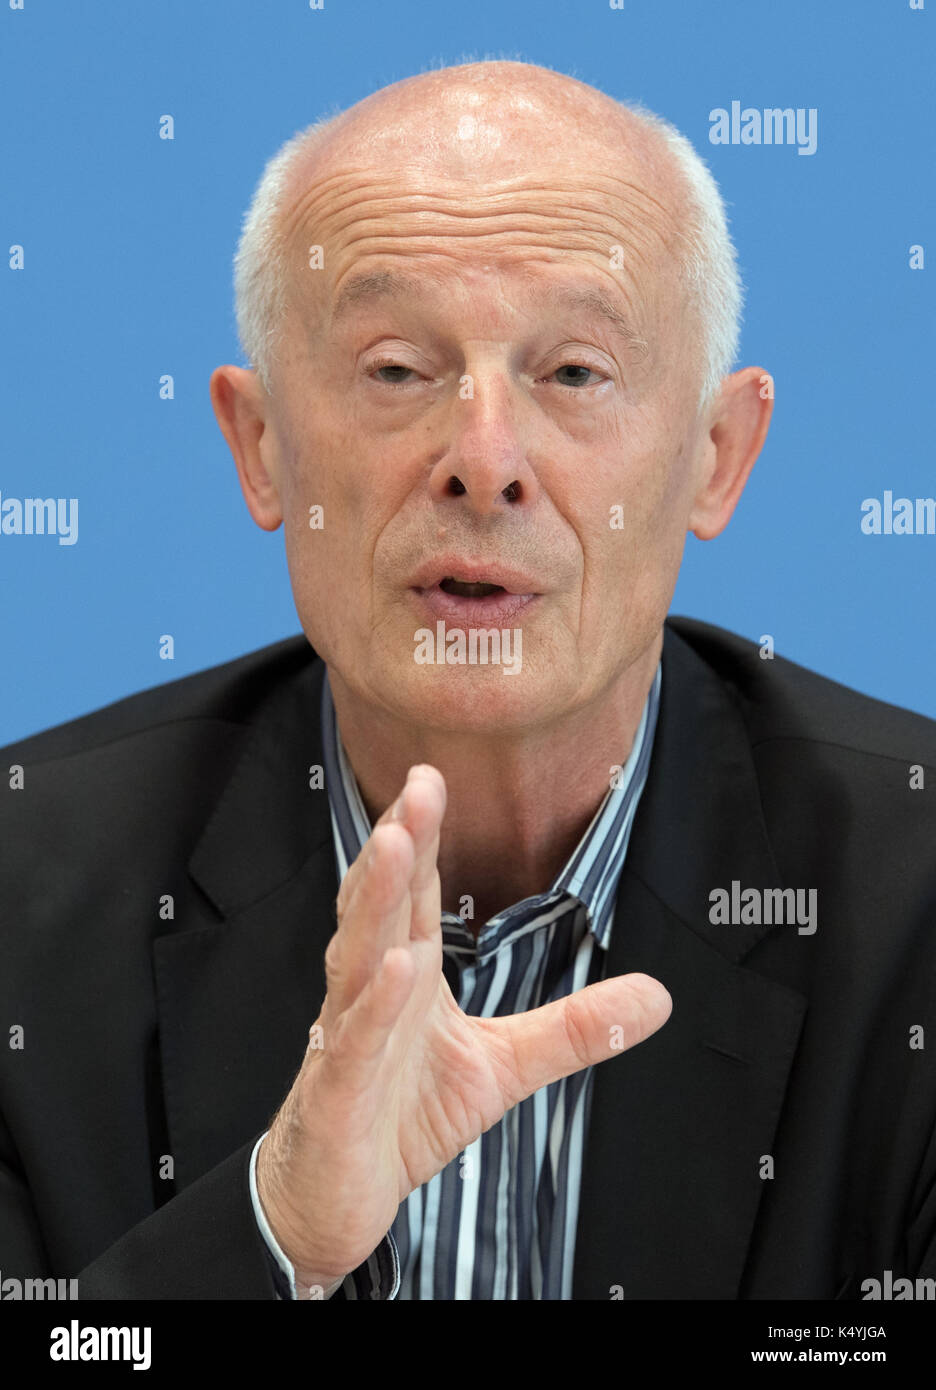 Berlin, Germany. 7th Sep, 2017. Hans Joachim Schellnhuber, the director of the Potsdam Institute of Climate Change Research, at a press conference at which the newly founded environmental pressure group Generation Manifest presented its programme in Berlin, Germany, 7 September 2017. Prominent figures from civil society, science, economy, and politics founded the initiative in order to remind politicians of the dangers of the reckless endangerment of future generations. Photo: Soeren Stache/dpa/Alamy Live News - Stock Image